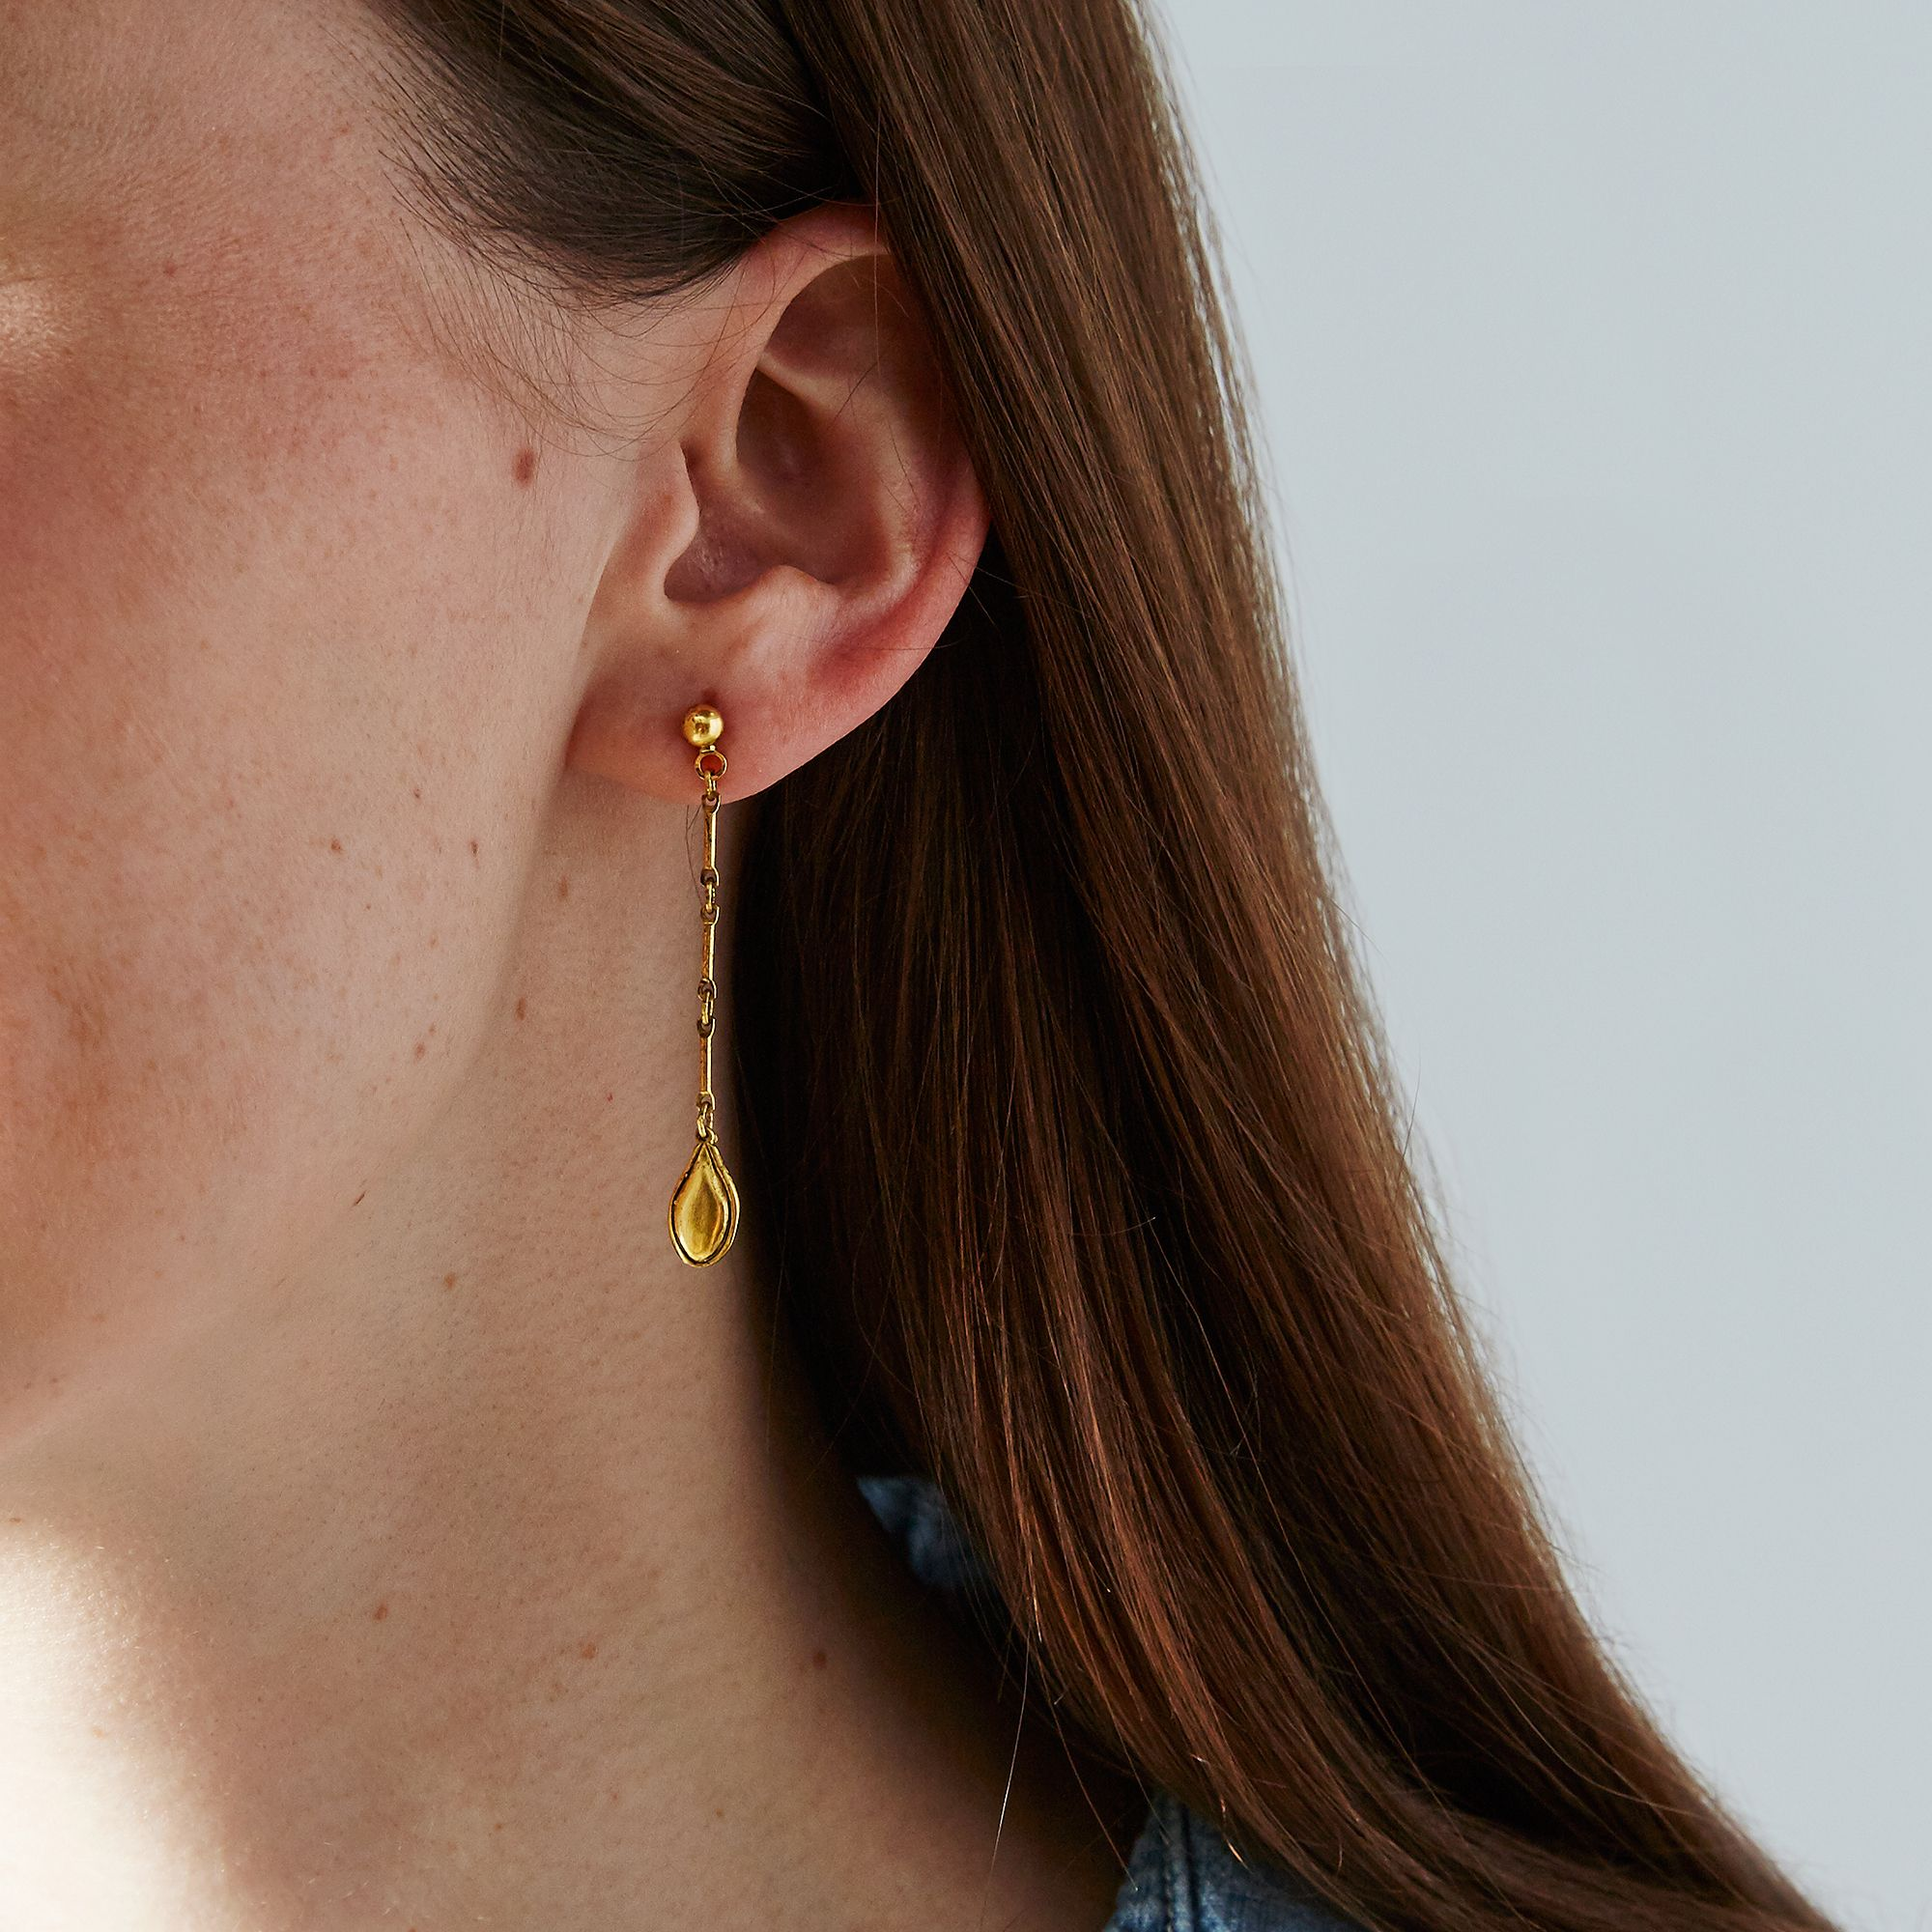 saturn earrings white earring charlotte chesnais moda single loading large by xs operandi